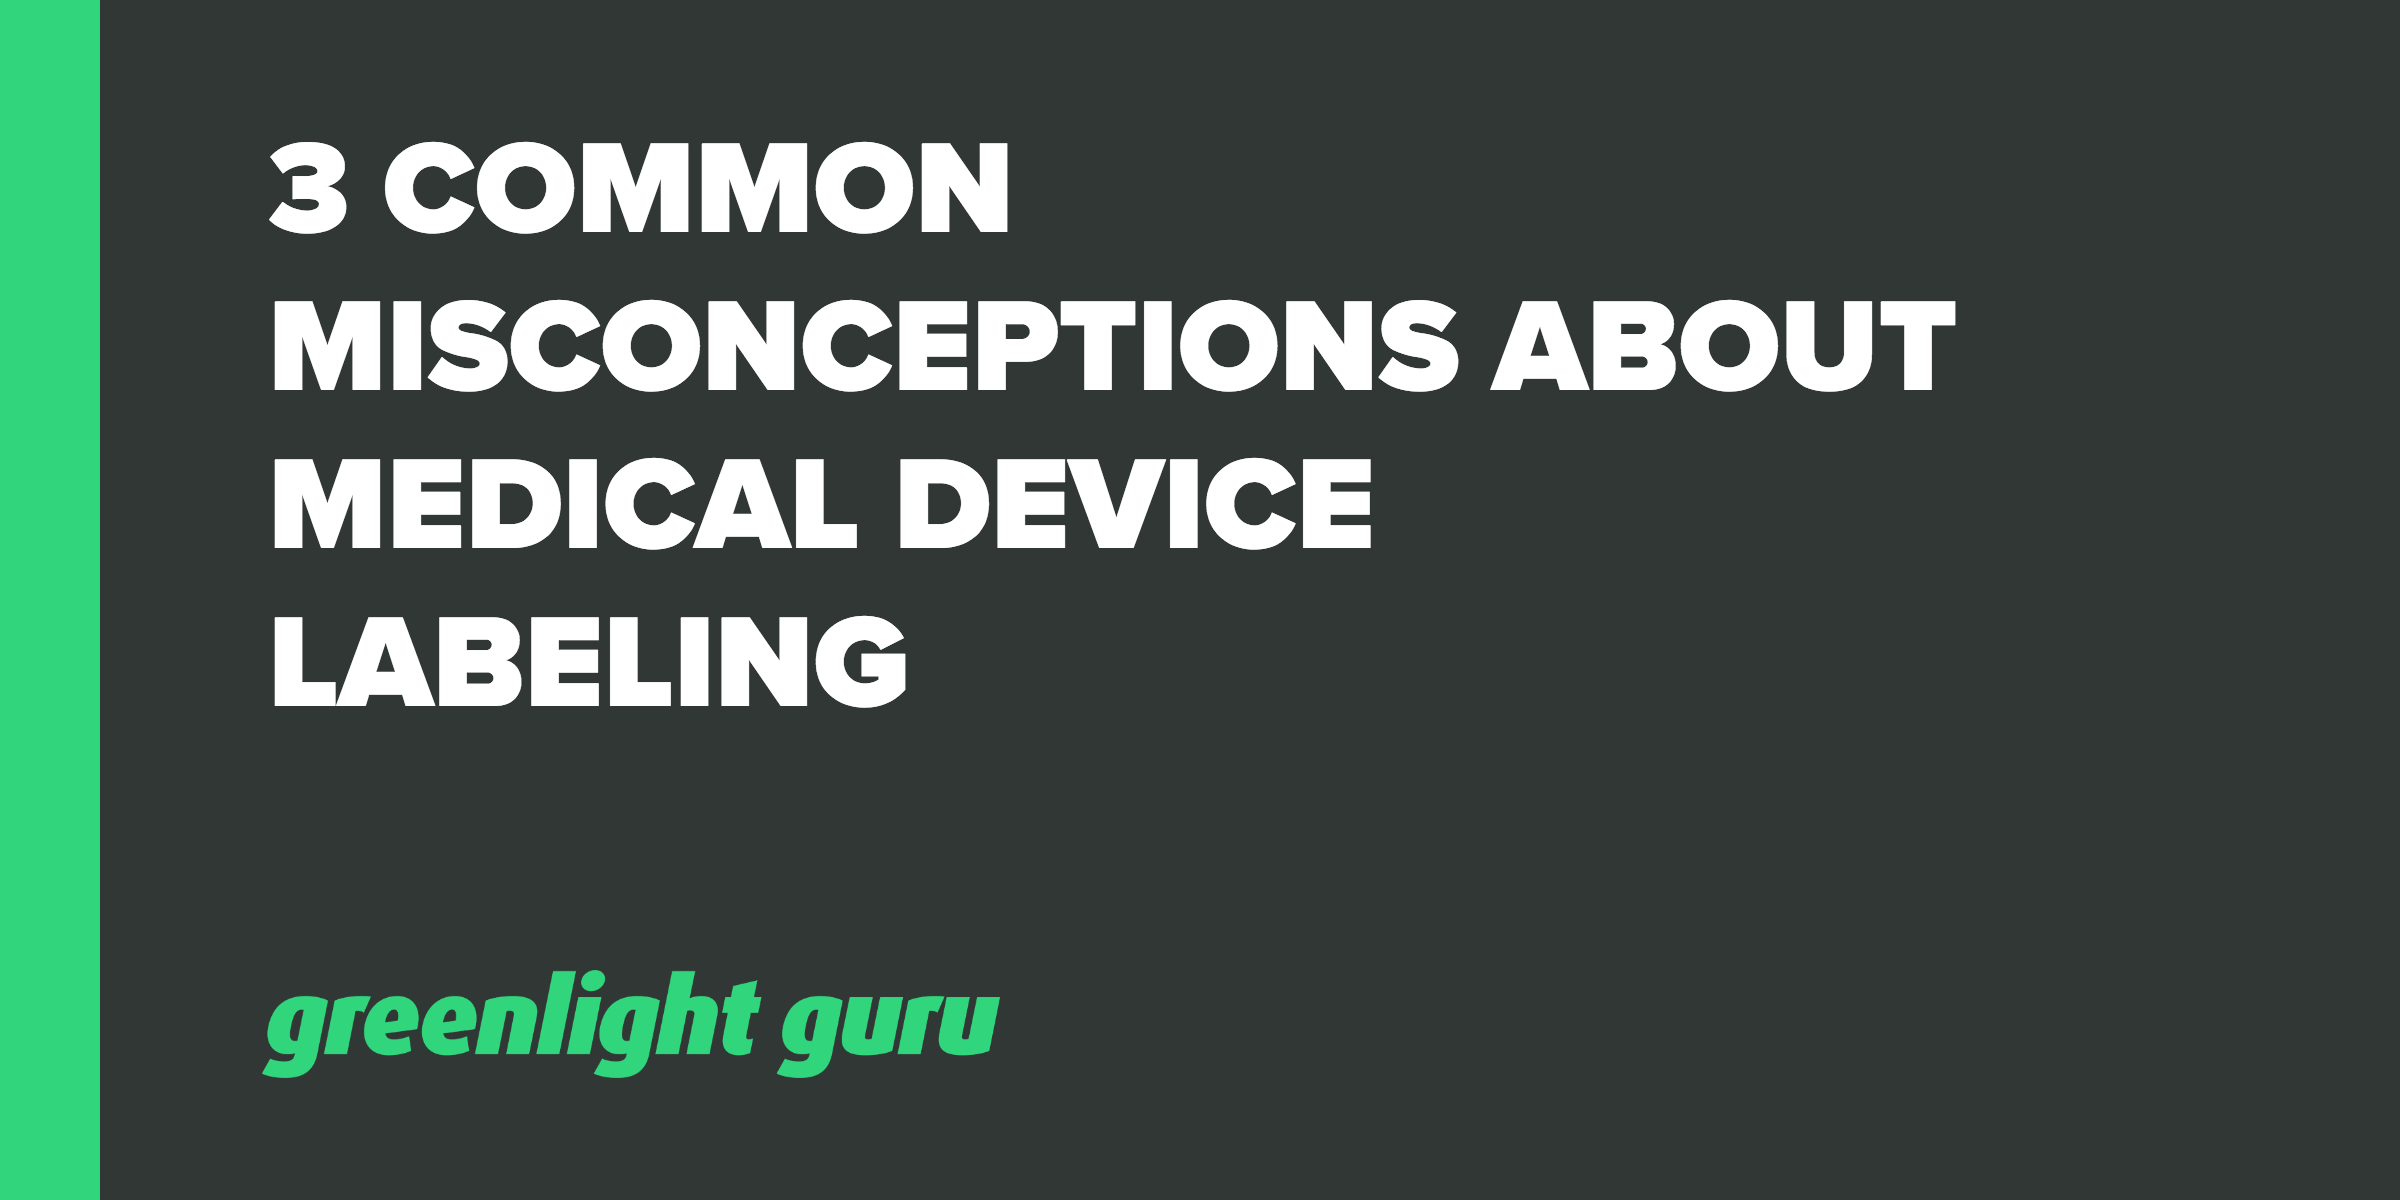 3 Common Misconceptions About Medical Device Labeling - Featured Image